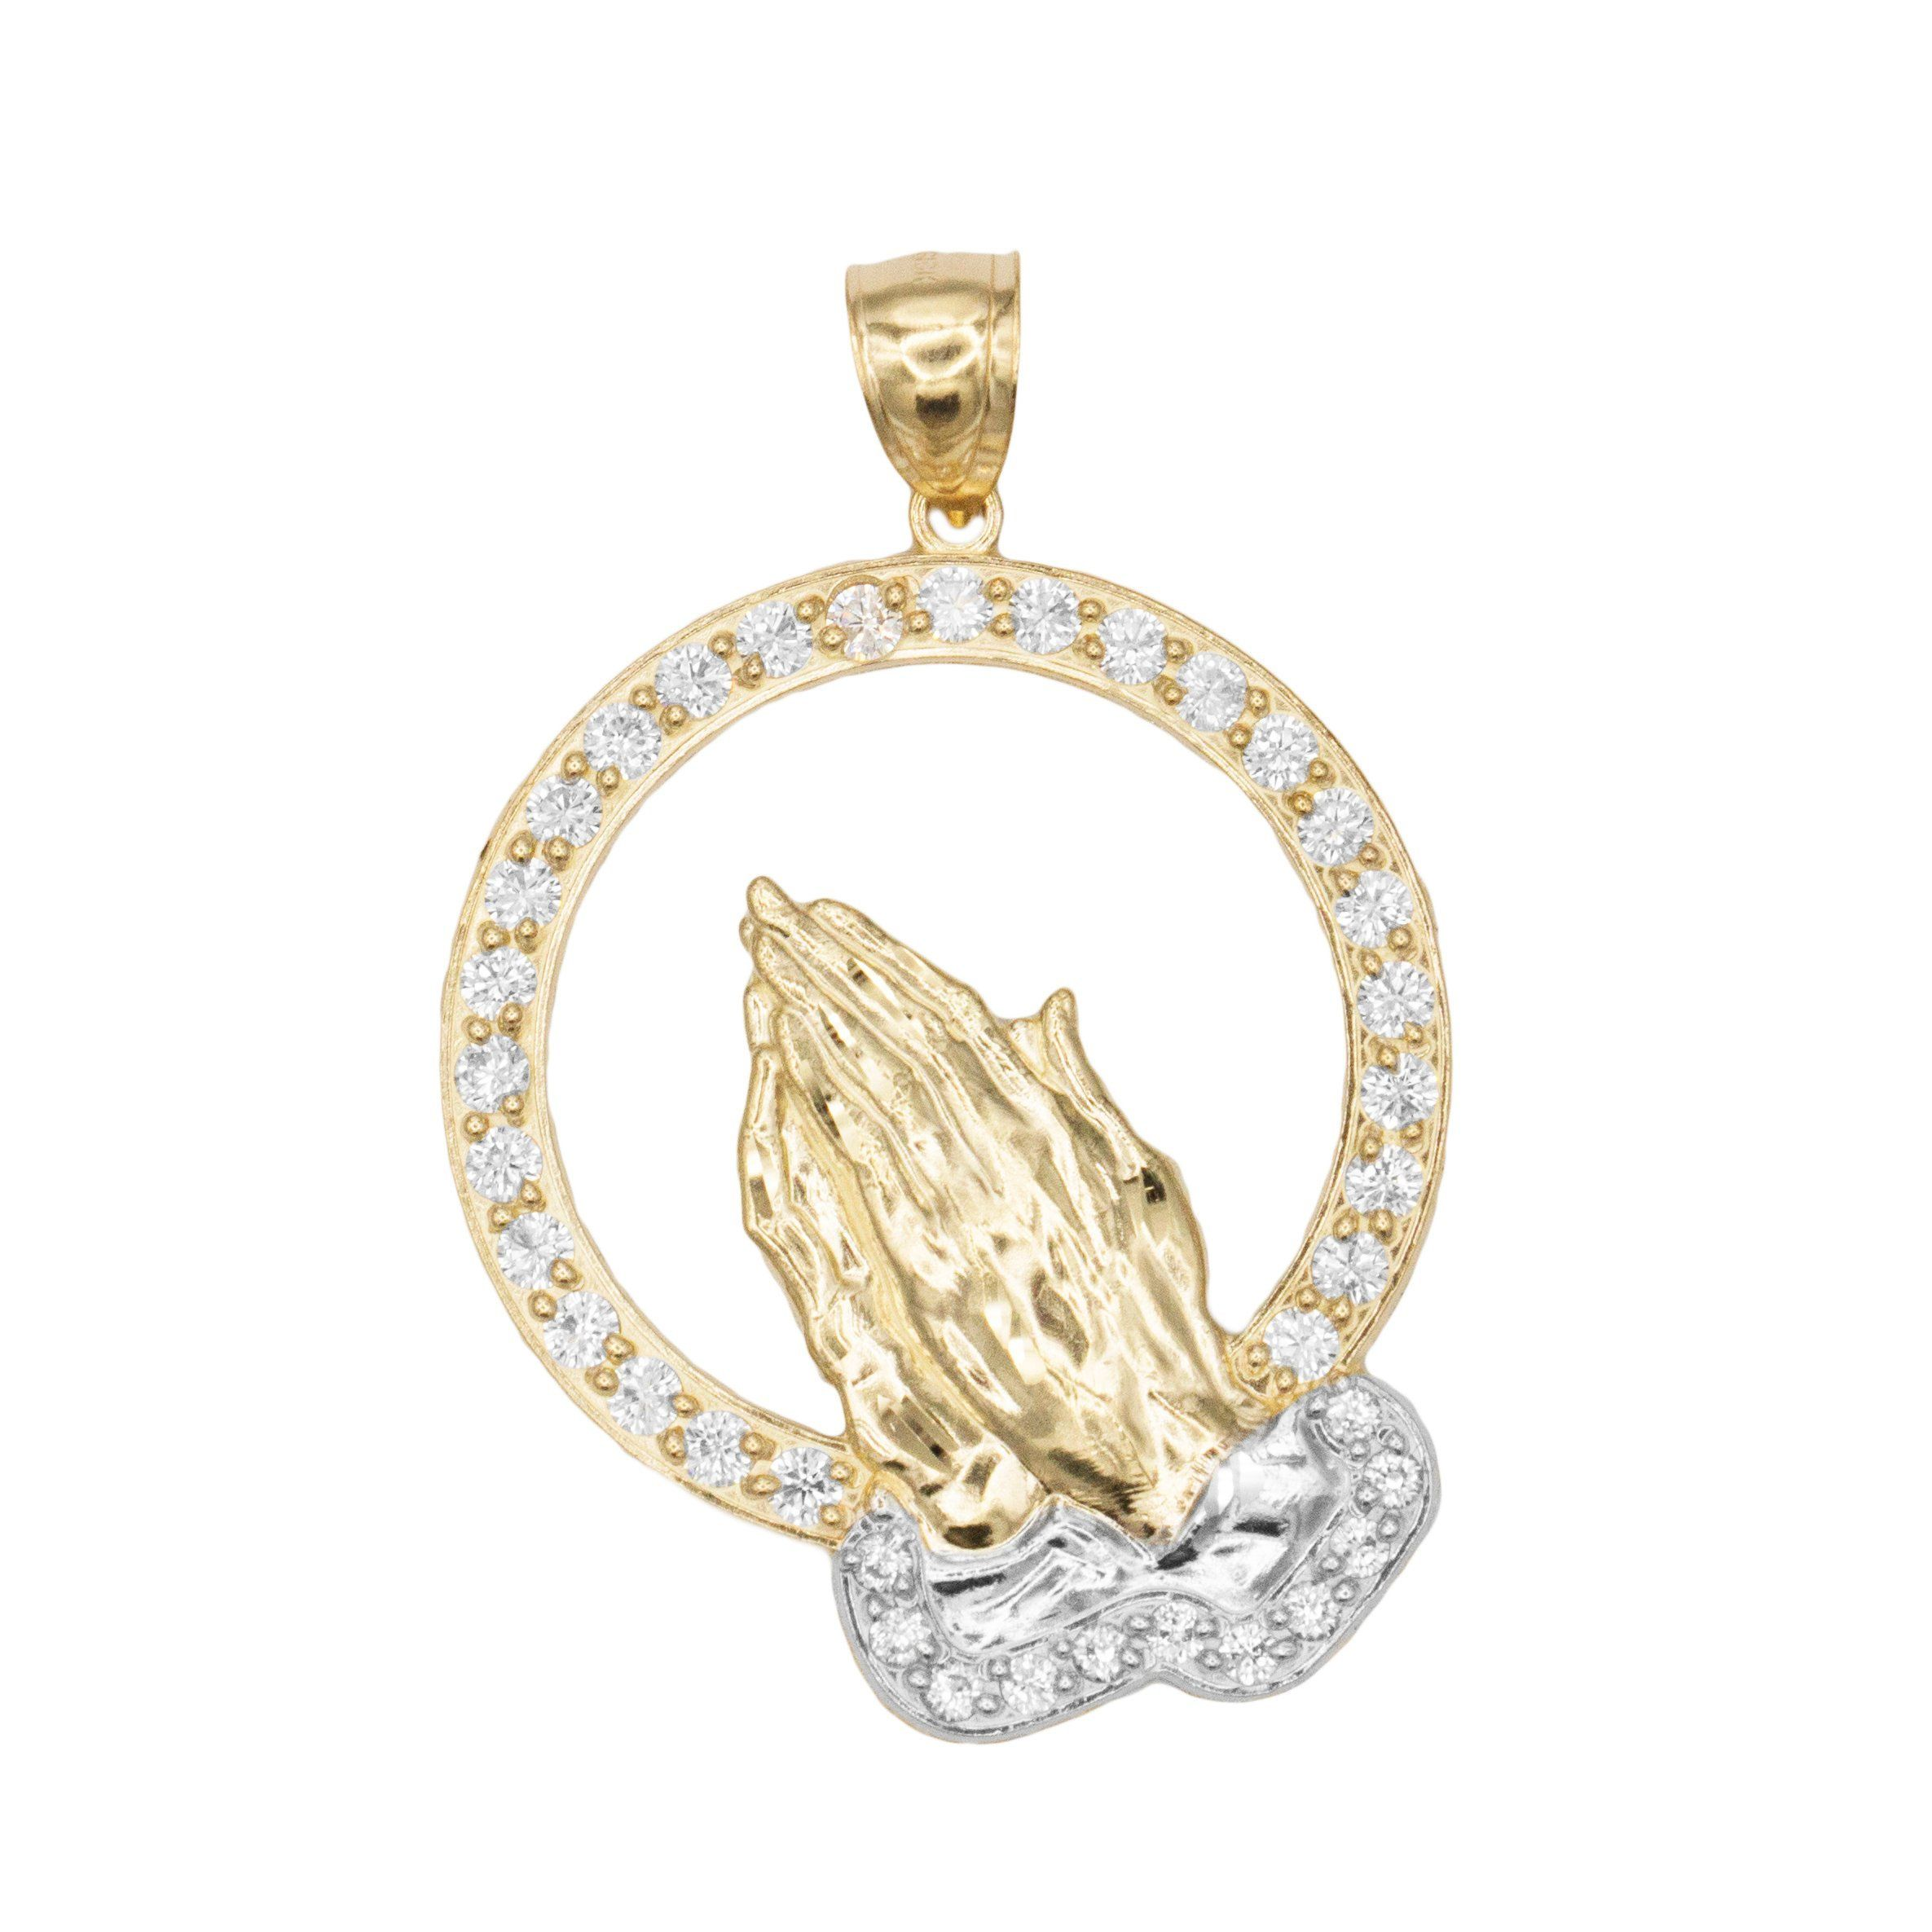 48c44ca5dedb1 Large 10k Solid Gold Praying Hands Pendant with Cubic Zirconia ...